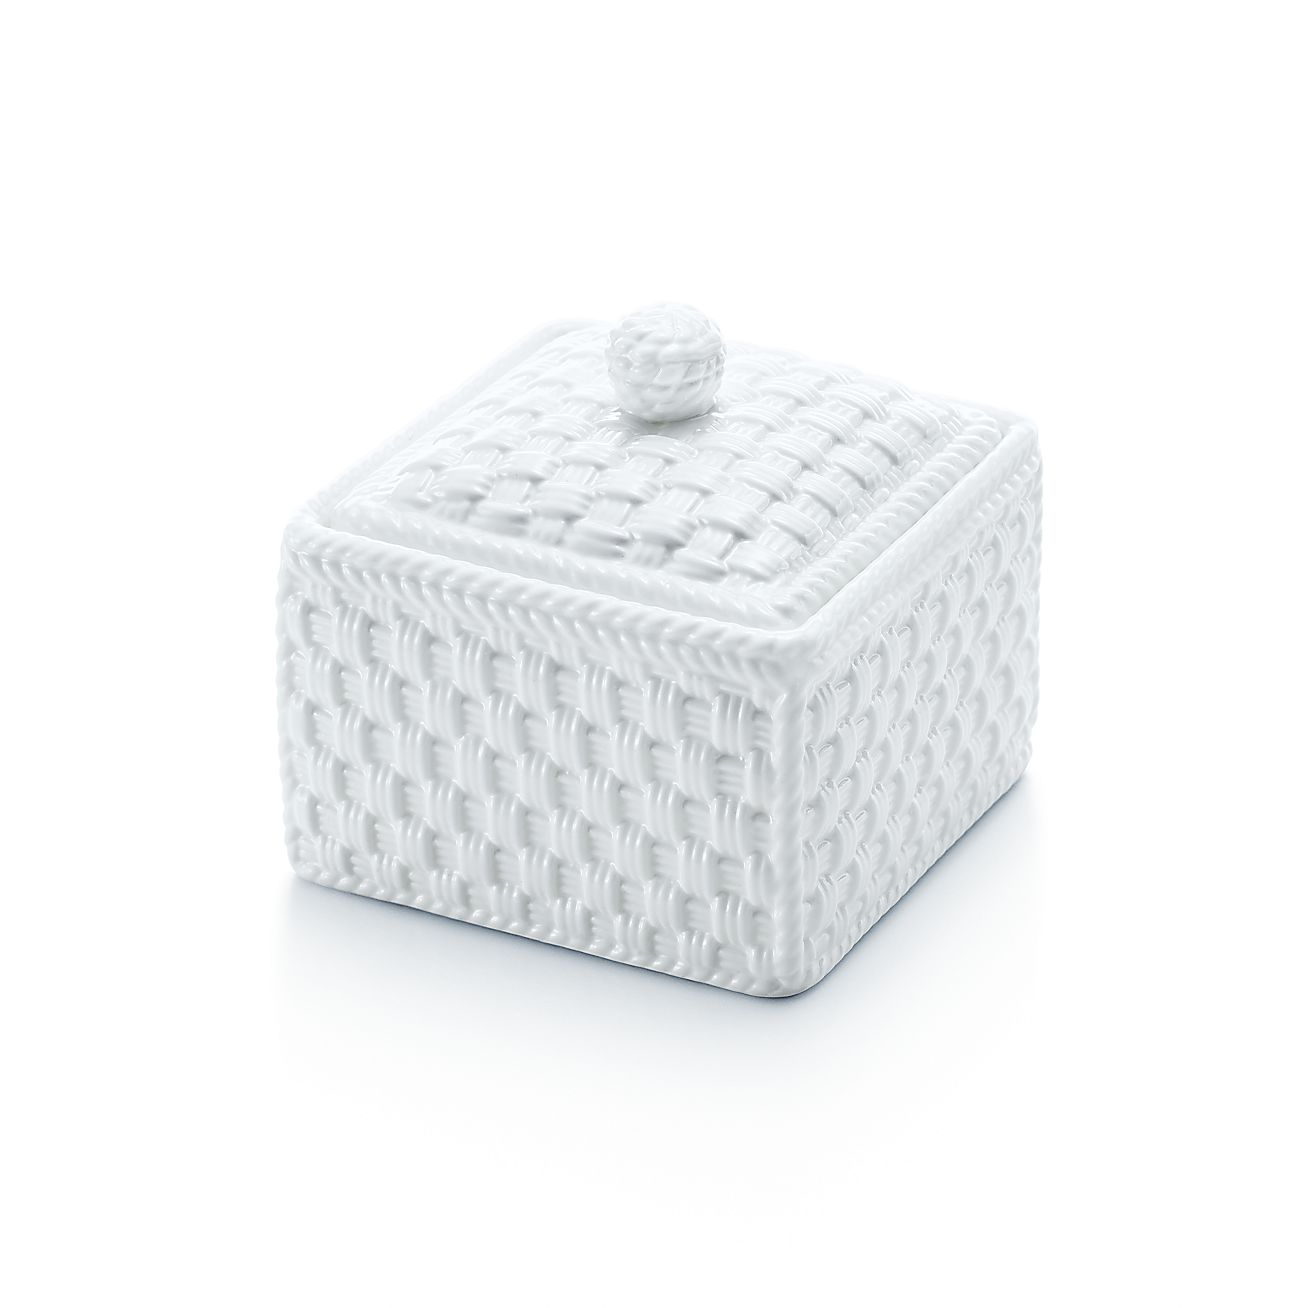 Tiffany Weave:Square Box